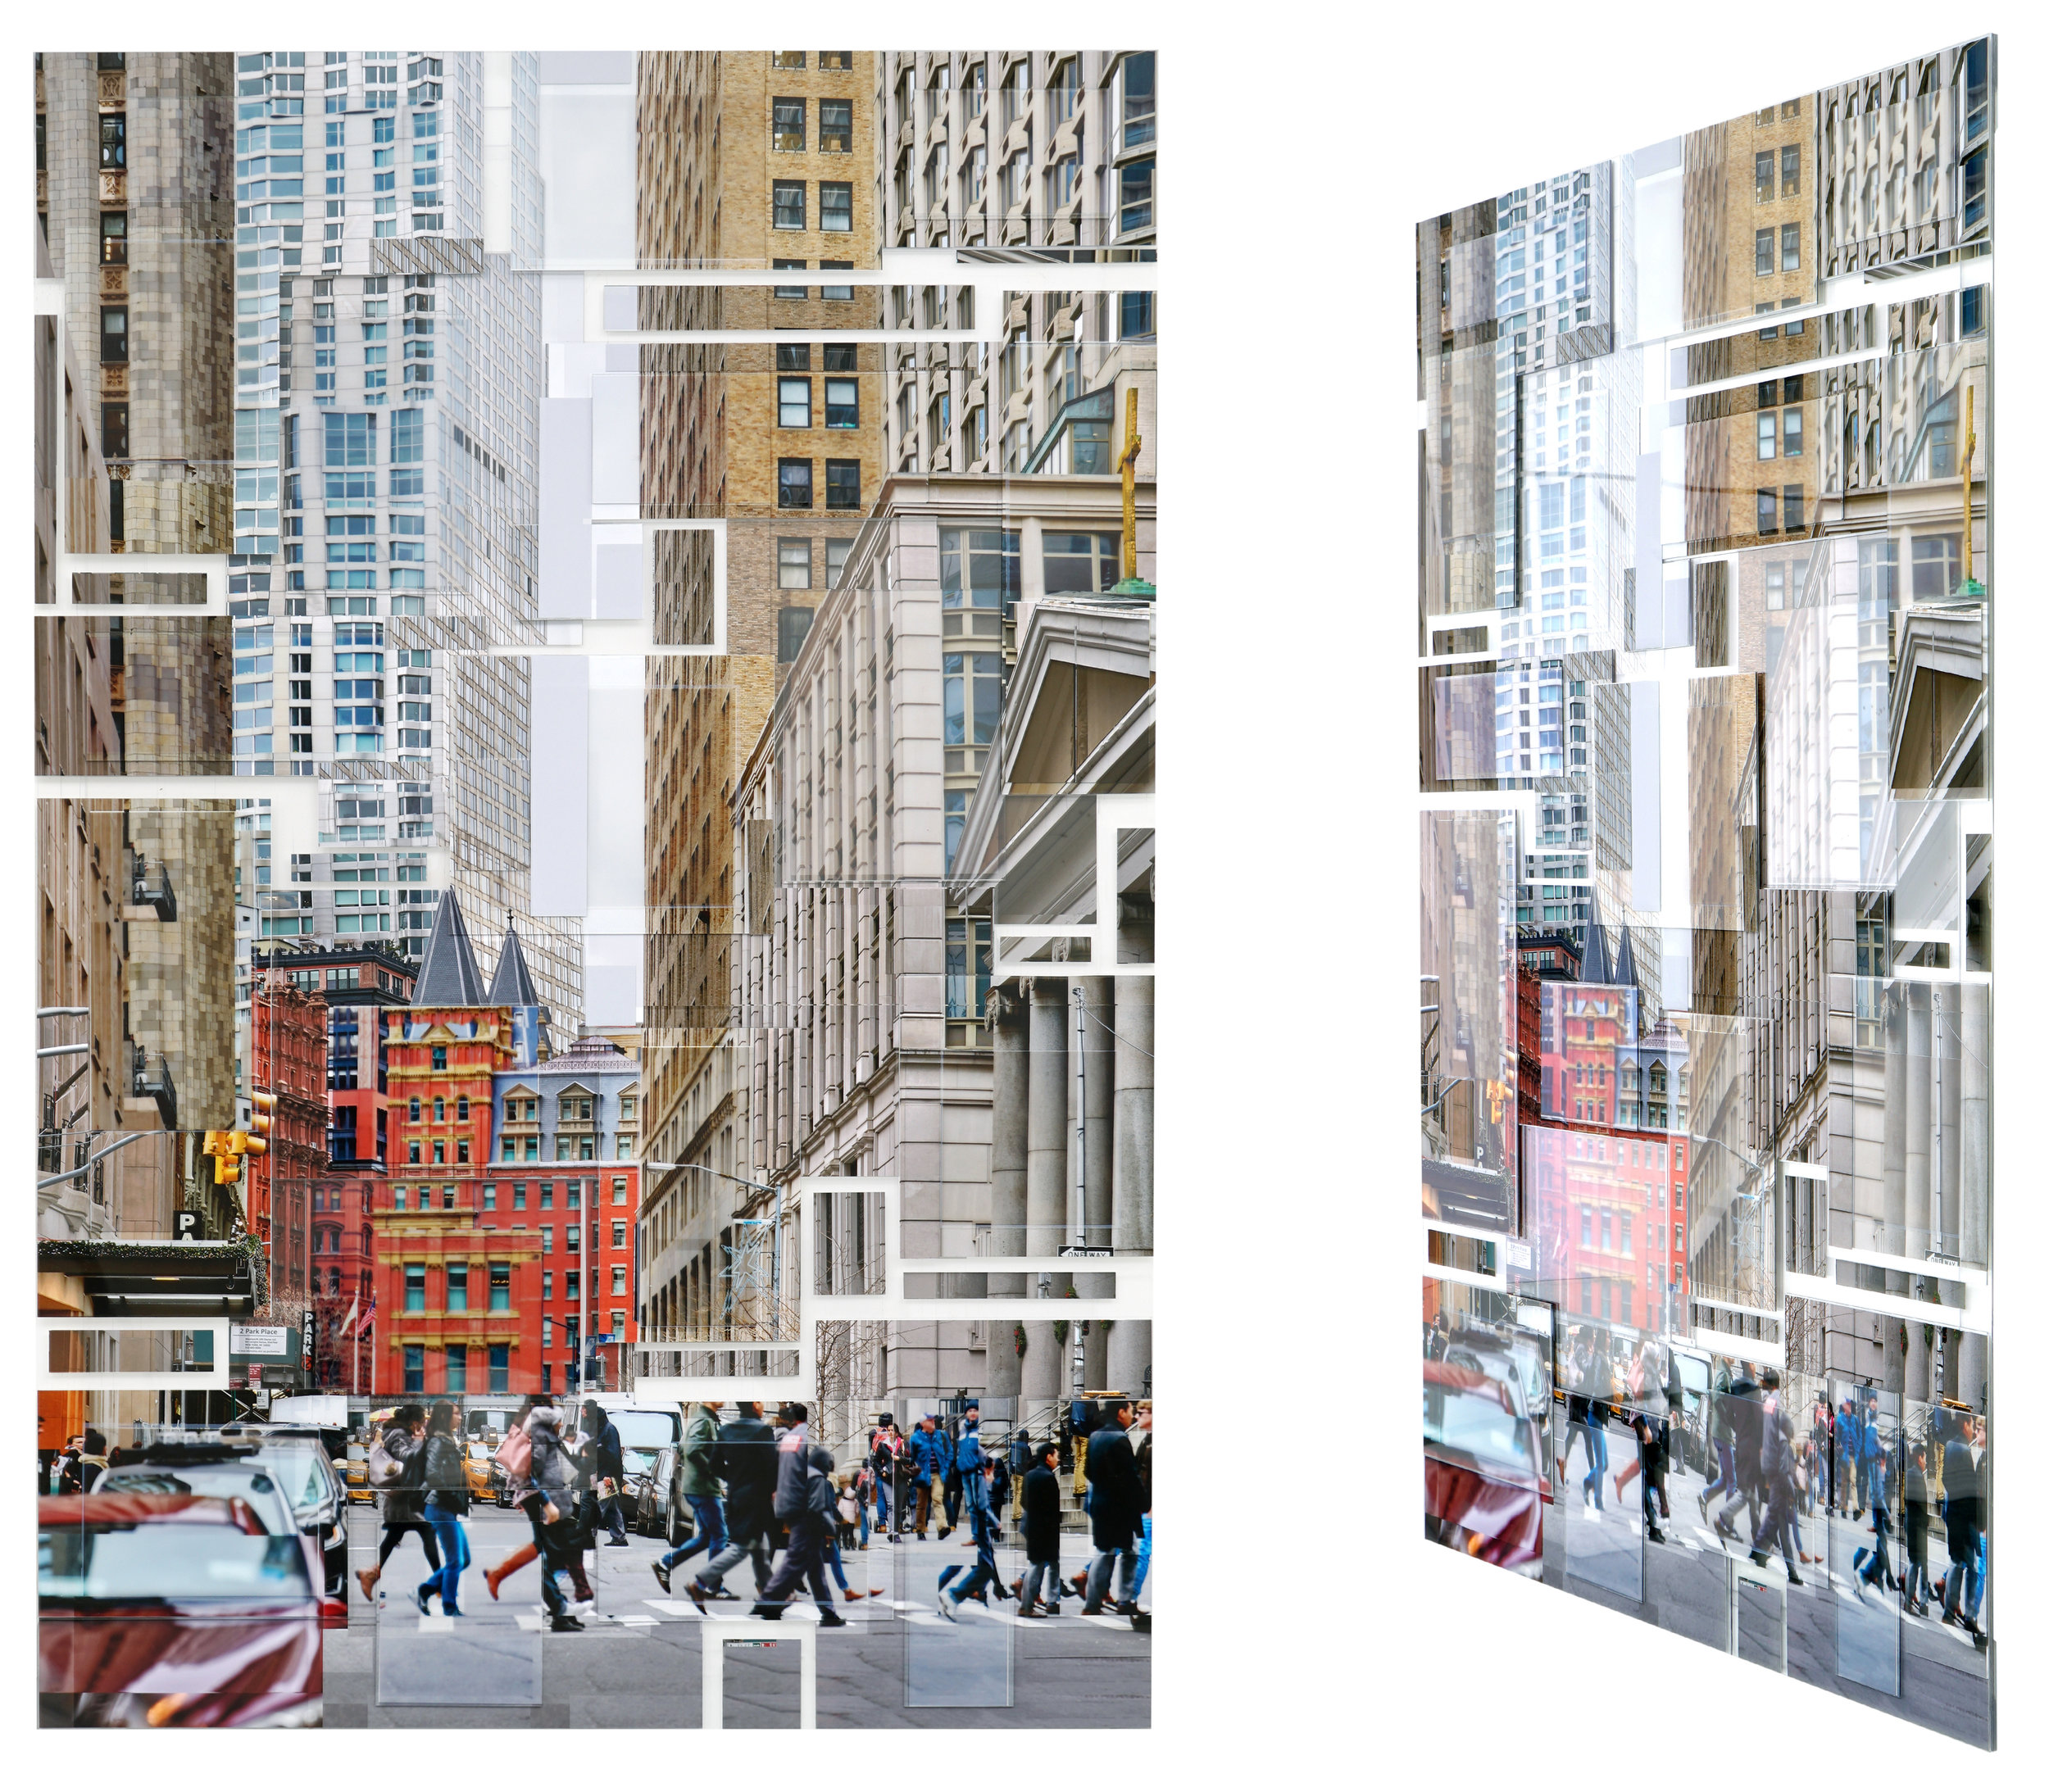 nyc 157   2/17  30x45in 76x114cm